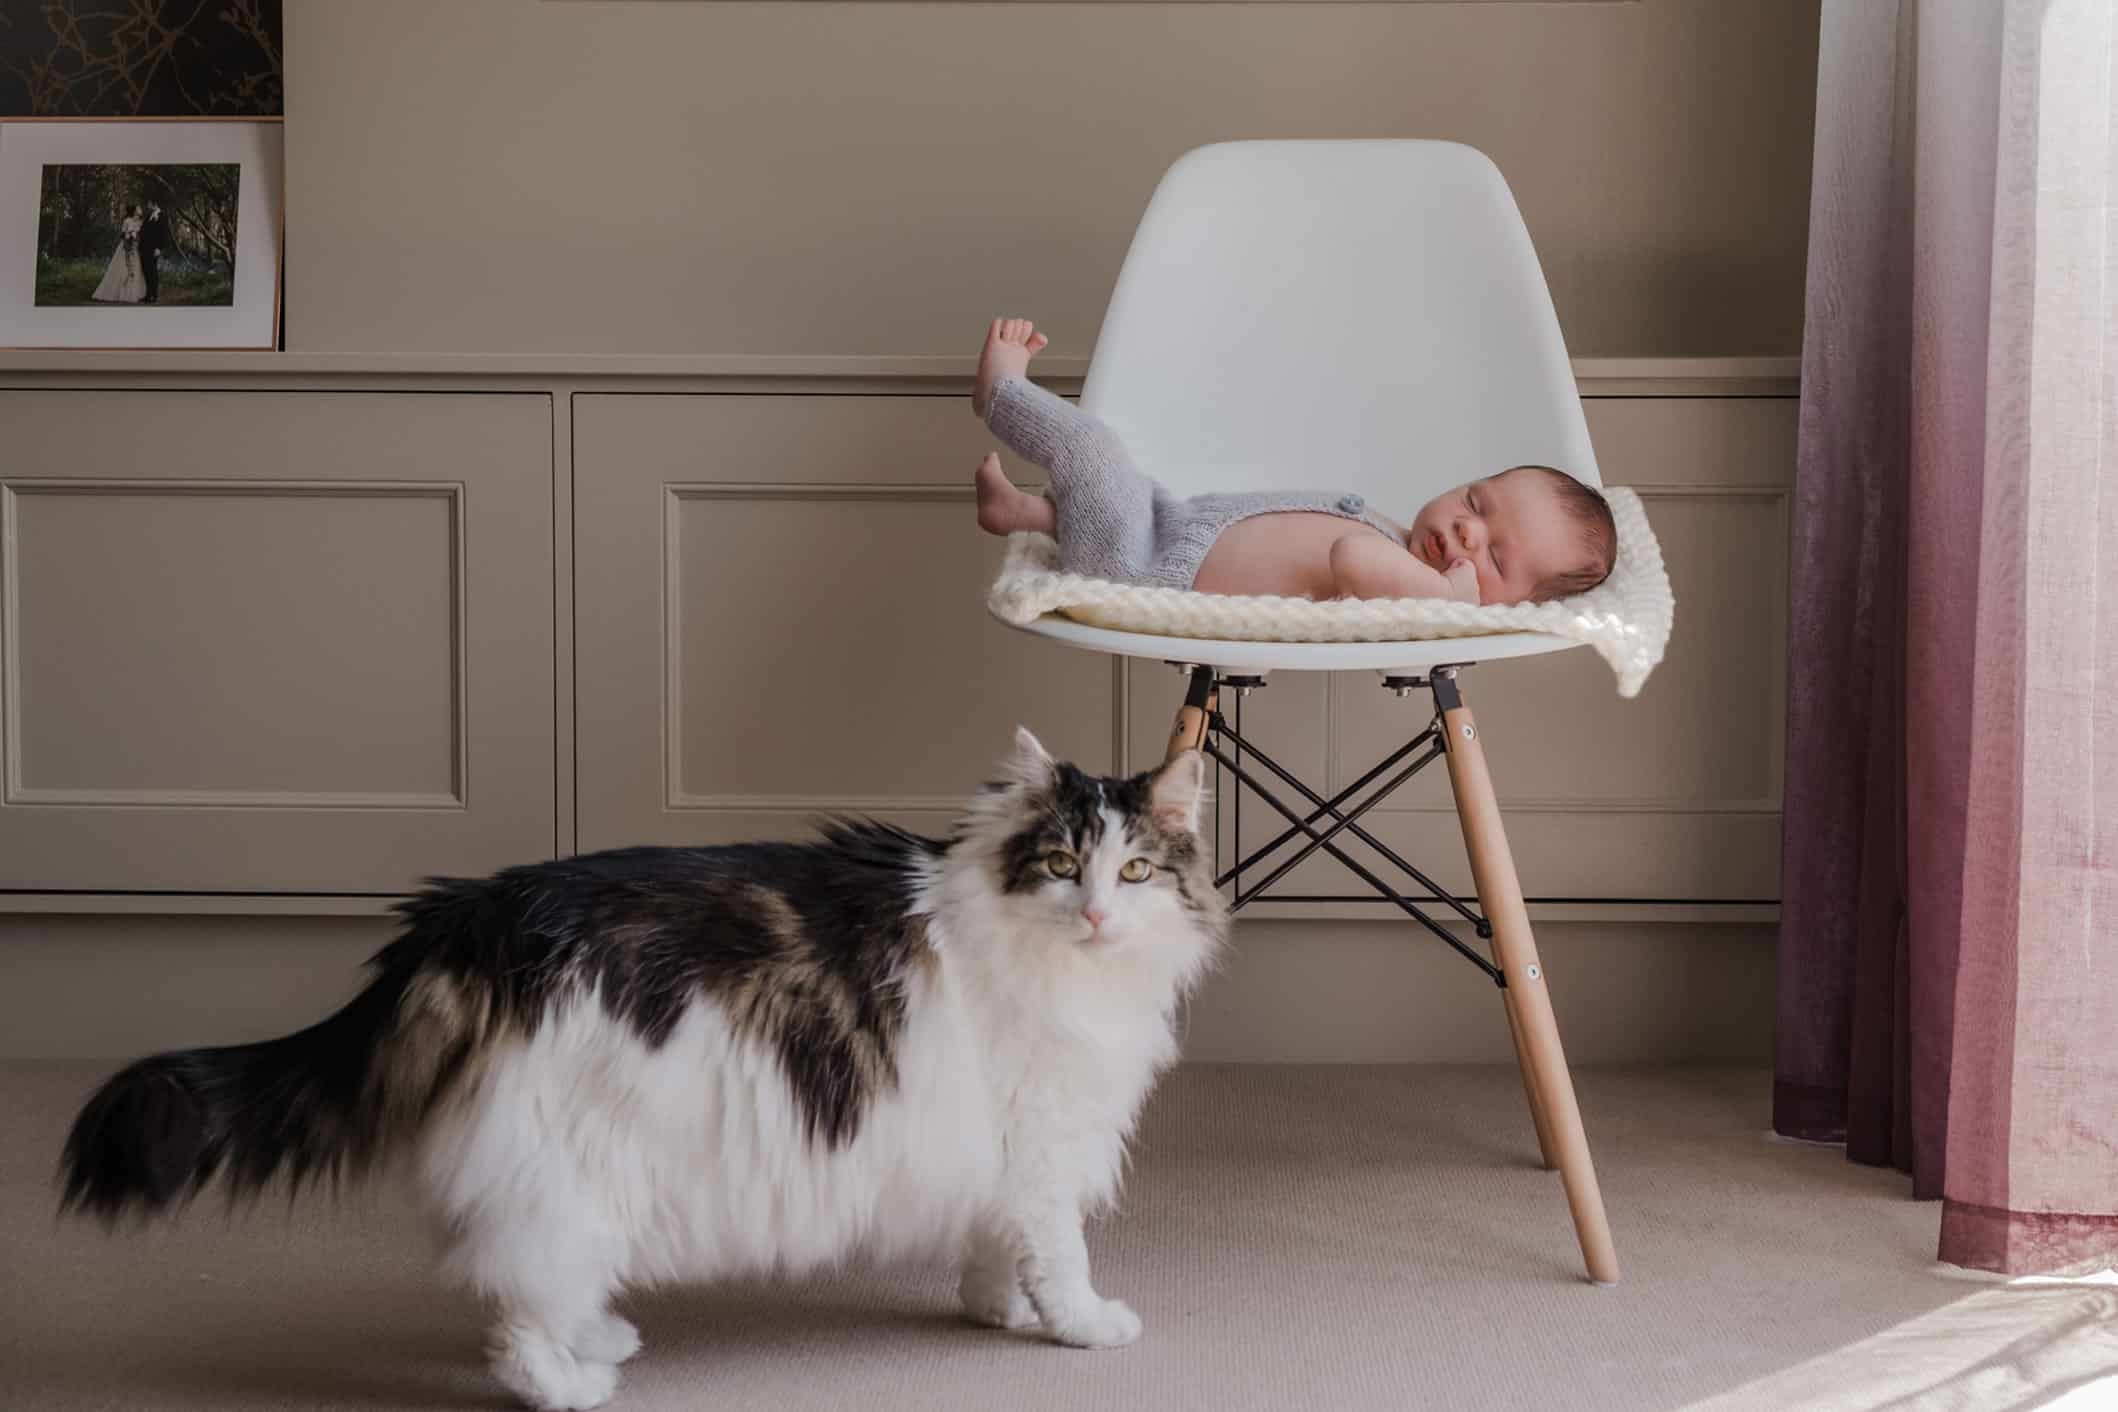 newborn photography ideas with cats. Edinburgh newborn photoshoot